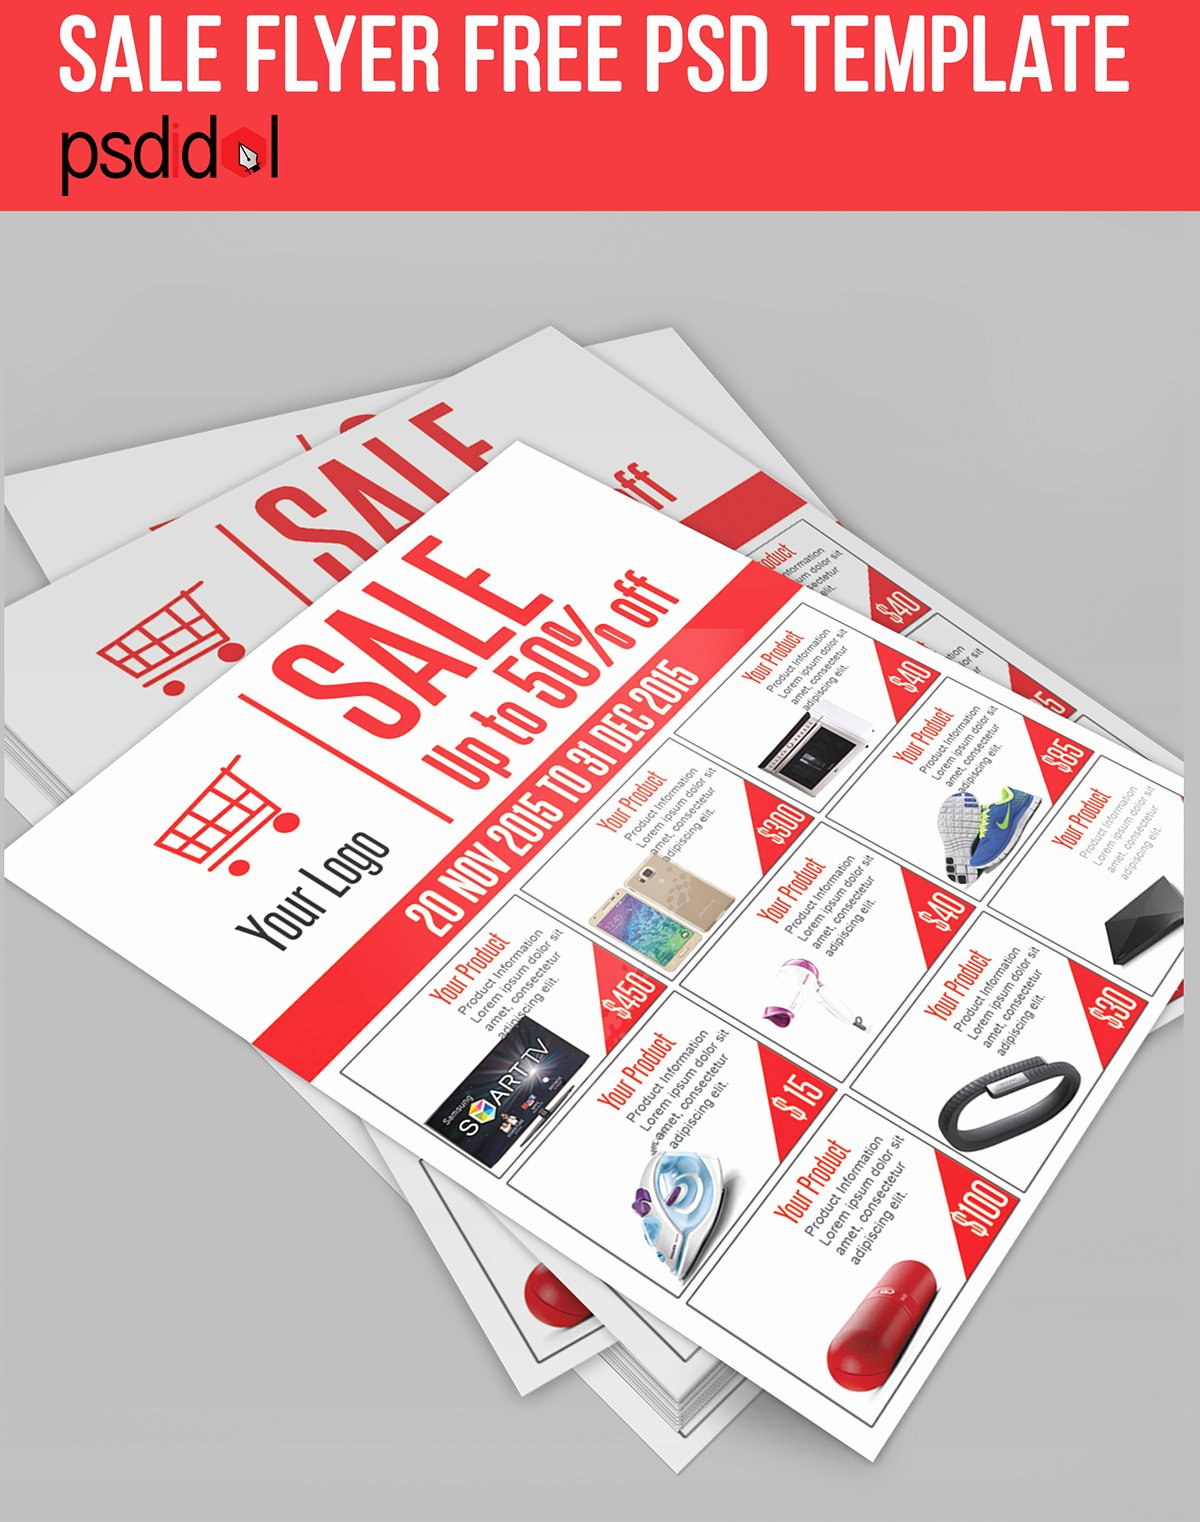 Free Product Catalog Template Fresh Sale Flyer Free Psd Template Download On Behance